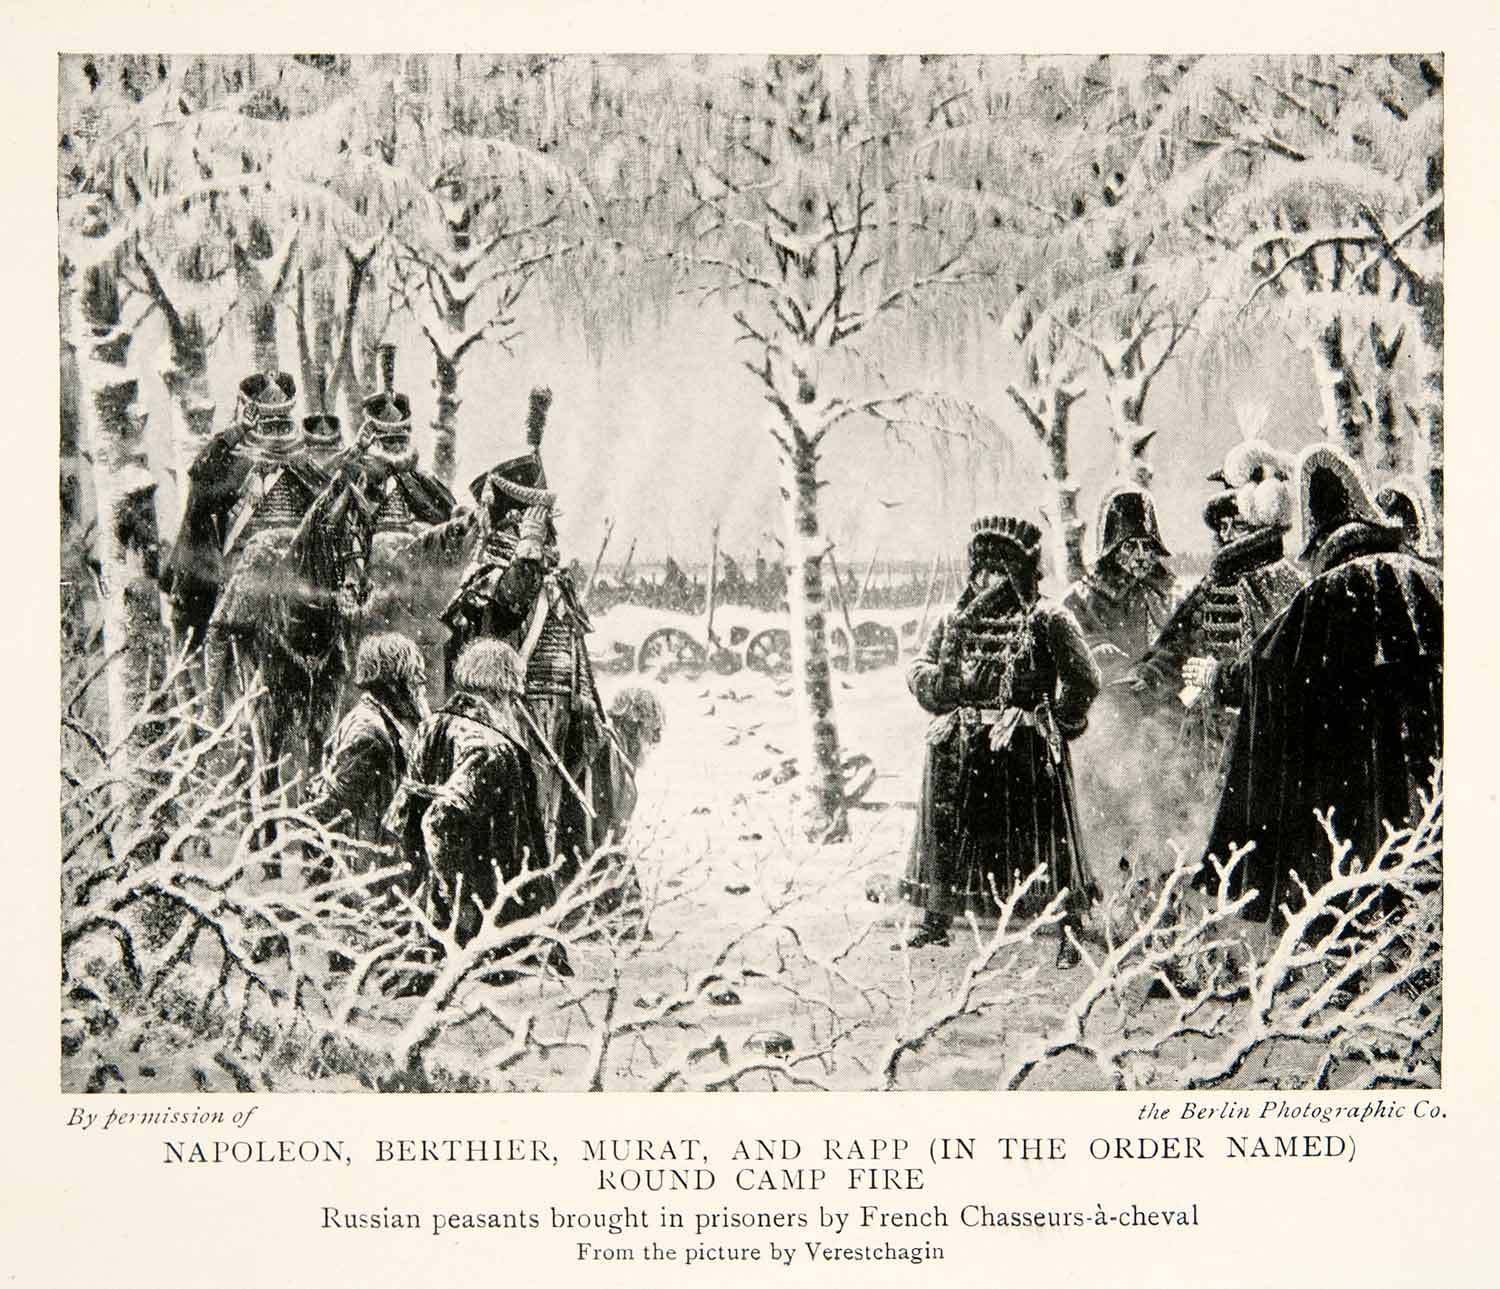 1914 Print Napoleonic Wars Campfire Russian Campaign French Army Officers XEU9